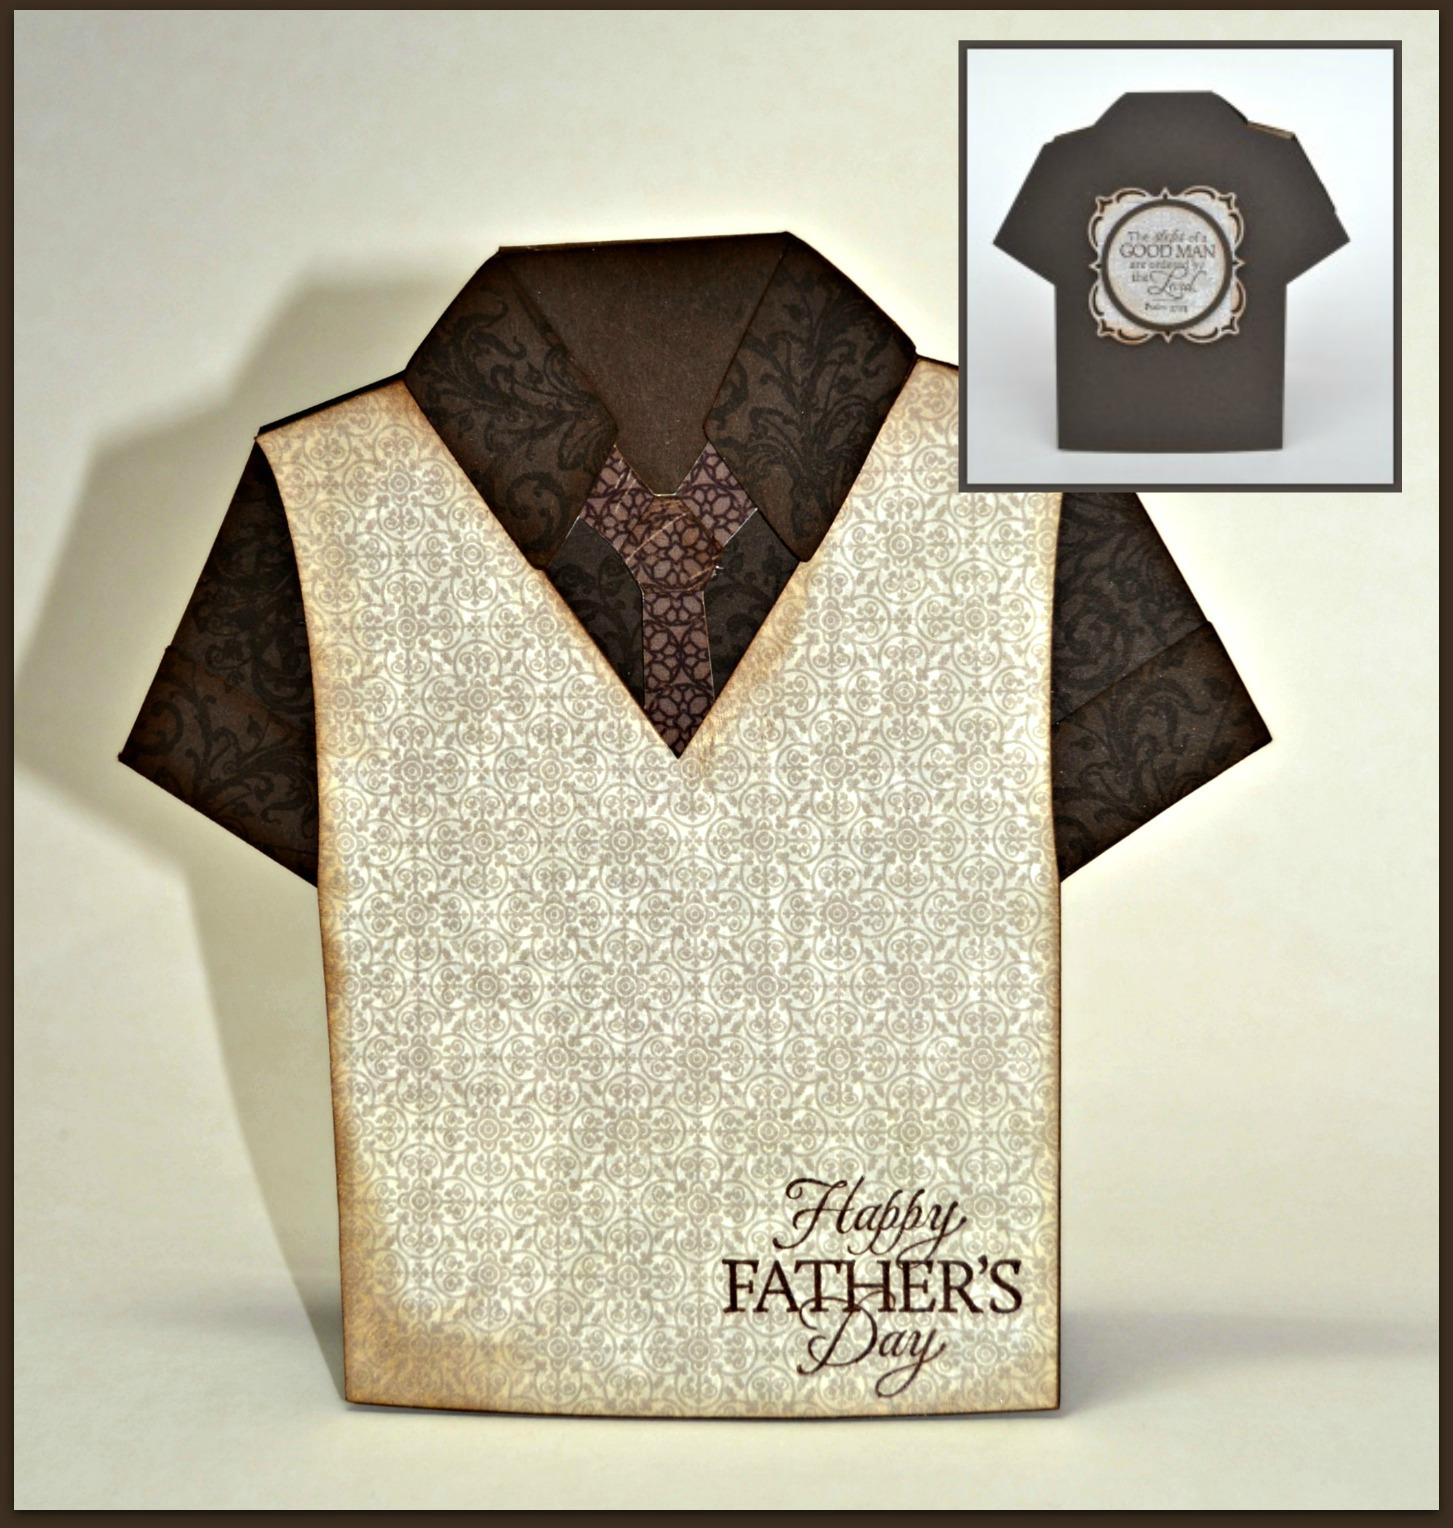 Shirt design card - The Shirt Is Cut From Espresso Card Stock And Stamped With The Vine From The Belles Vignes Stamp Set To Add A Design To The Card Stock